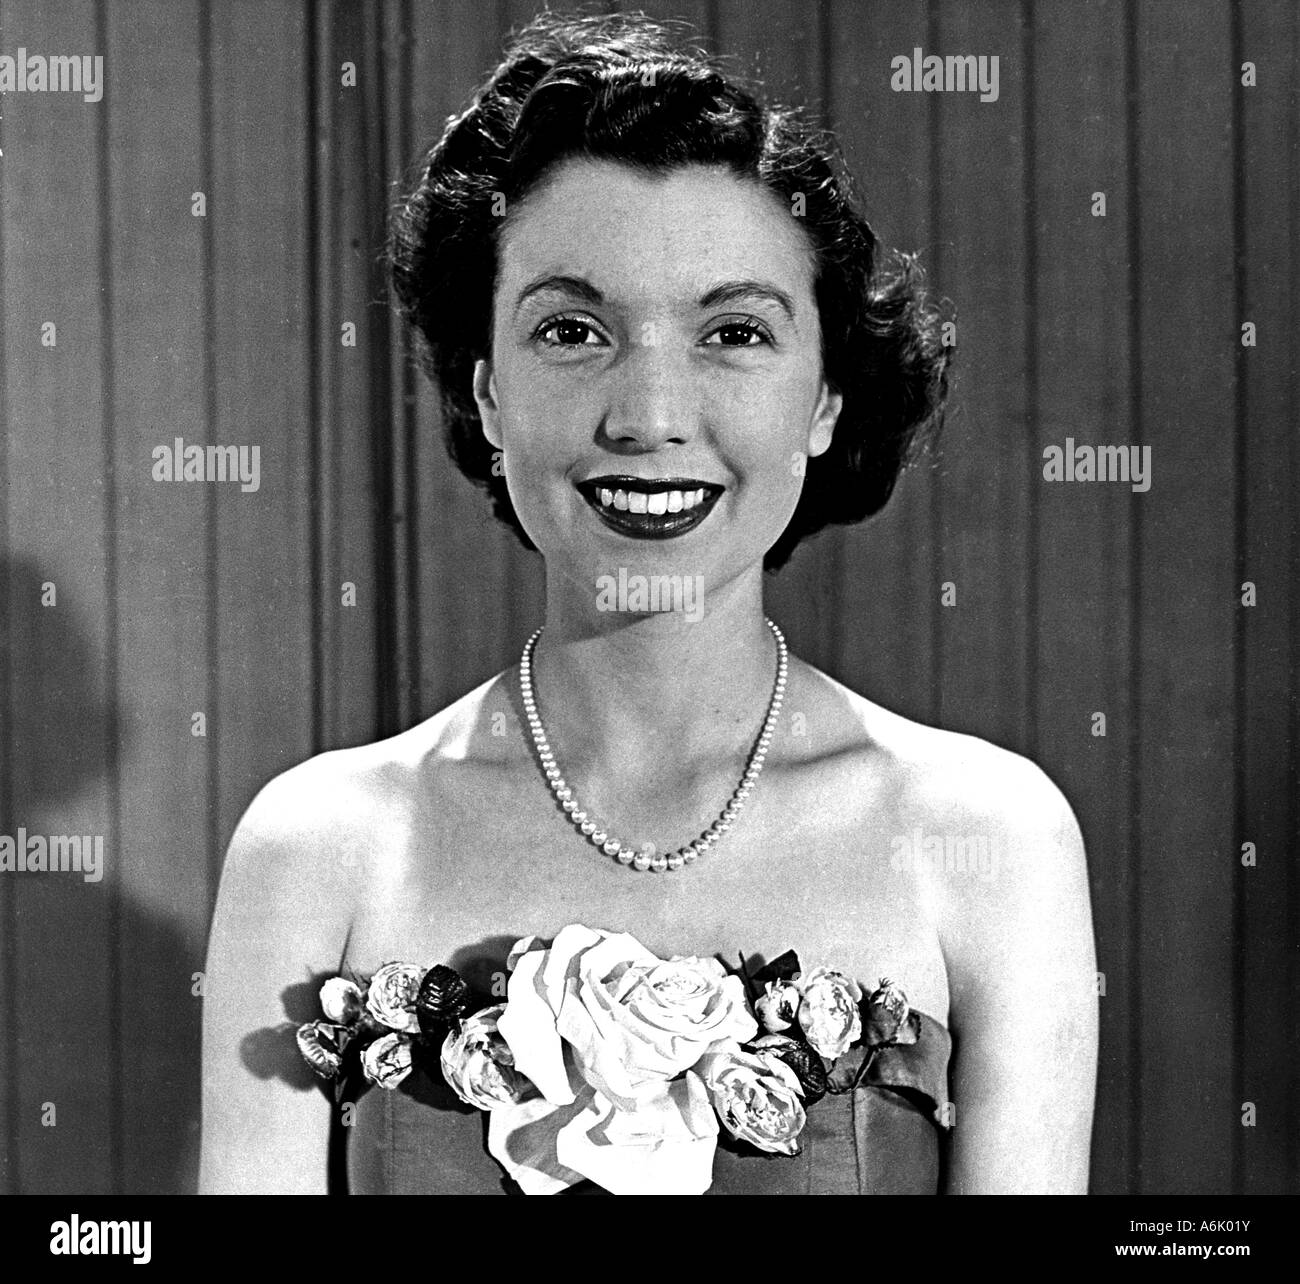 SYLVIA PETERS UK actress who was a continuity announcer for BBC TV between 1947 and 1958 - Stock Image